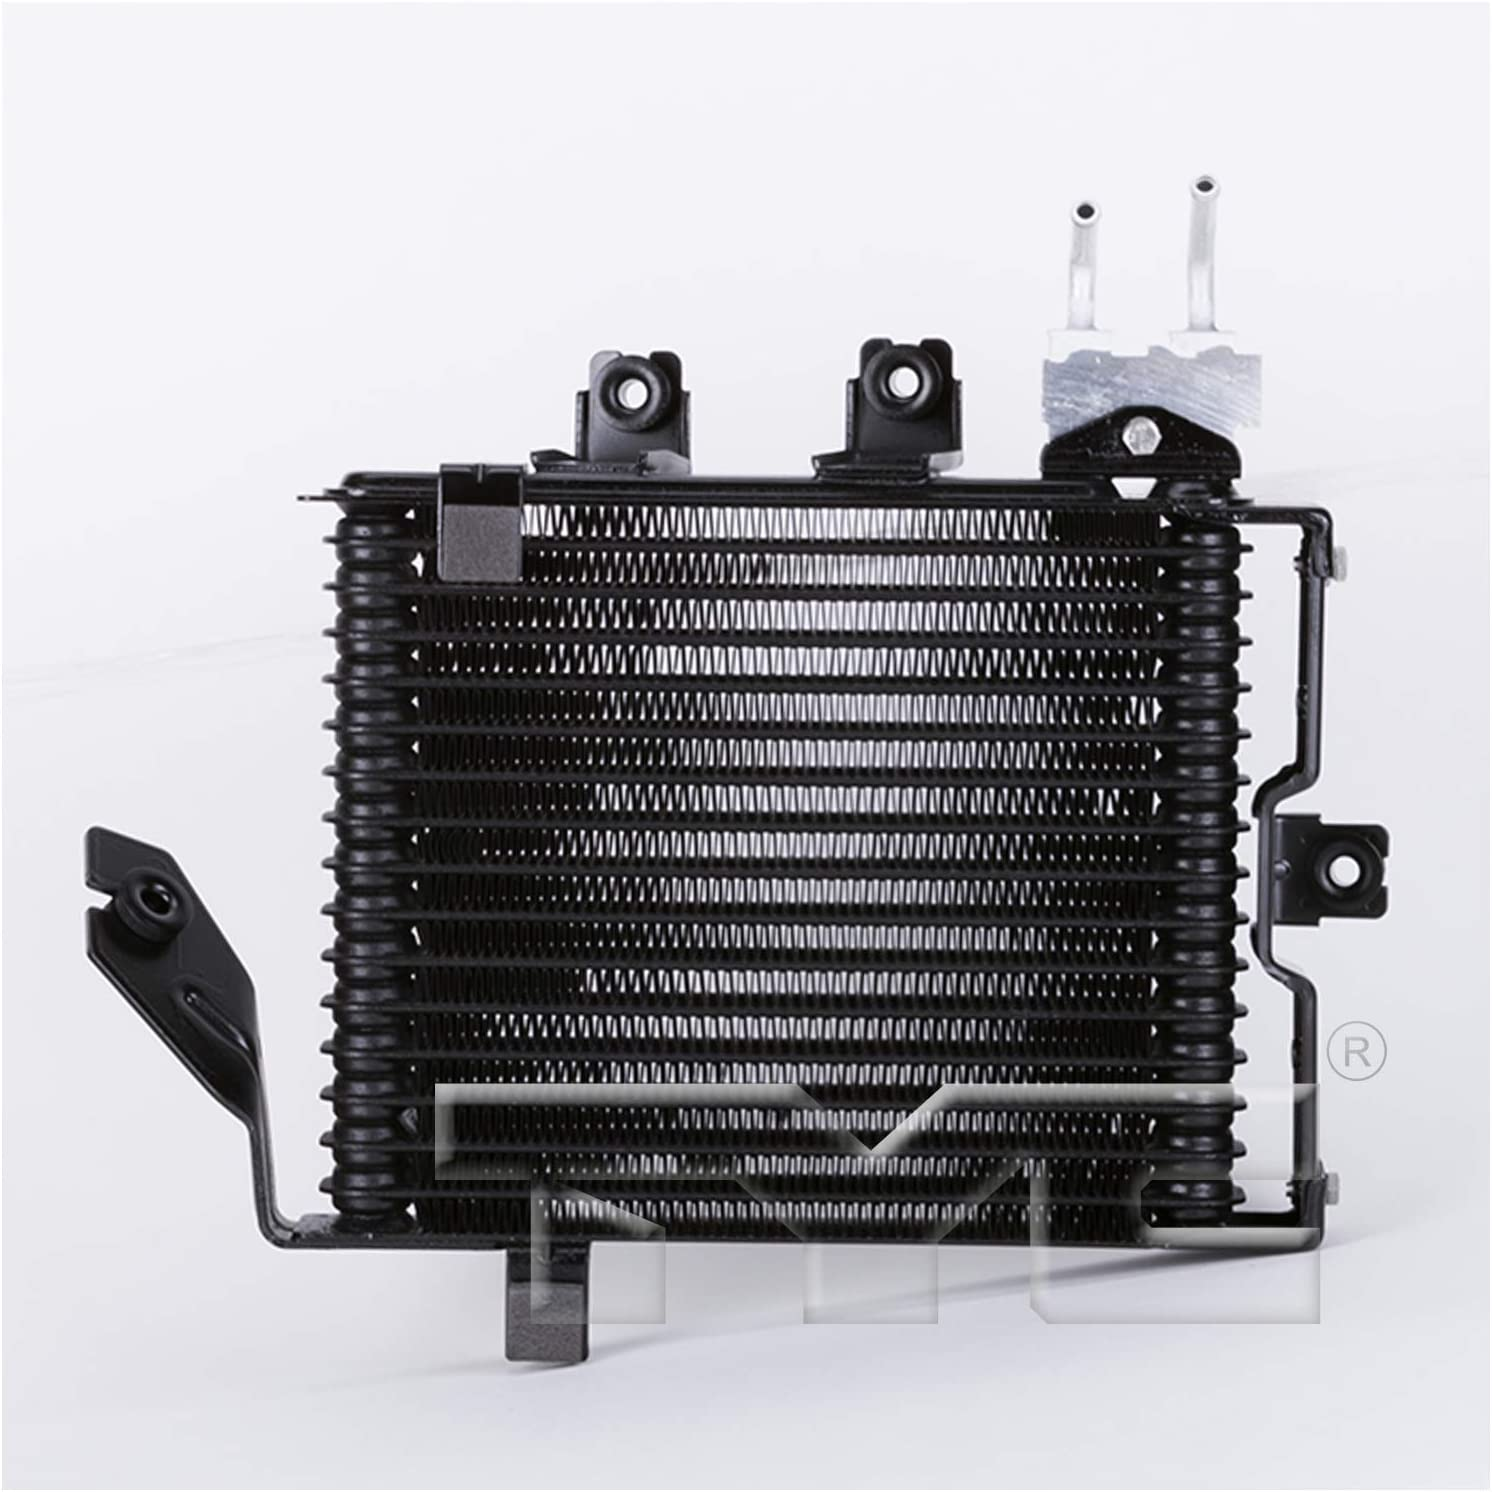 Automatic Transmission Oil Cooler Compatible With Infiniti//Nissan JX35 Pathfinder QX60 2013 2014 2015 2016 2017 2018 2019